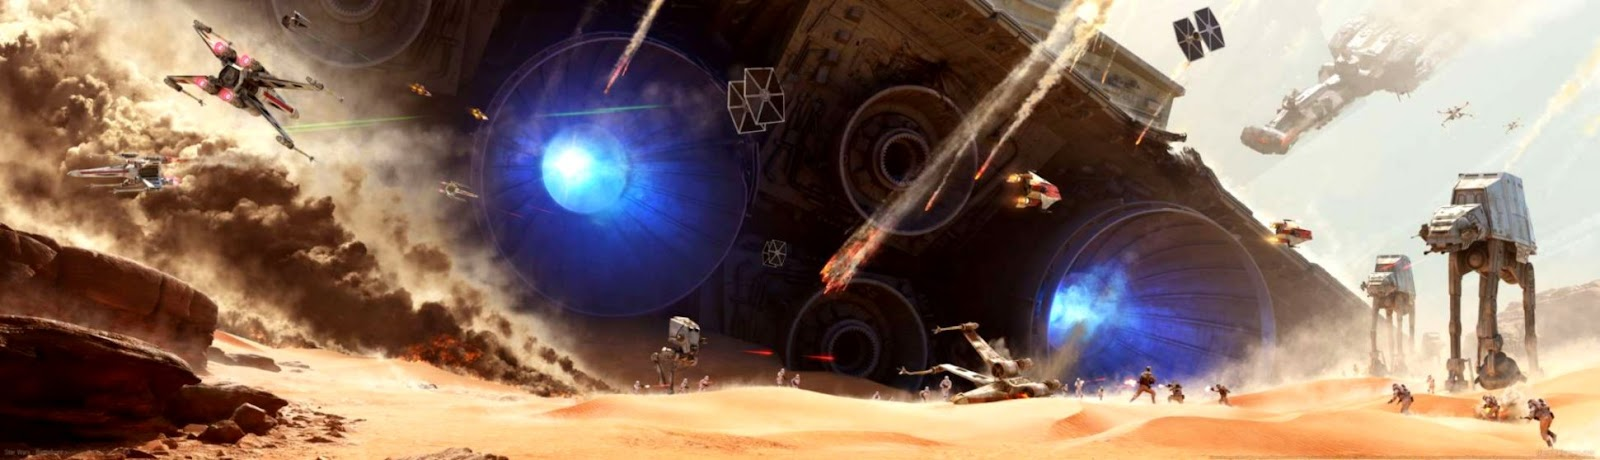 Dual Monitor Wallpaper Star Wars All Hd Wallpapers Gallery